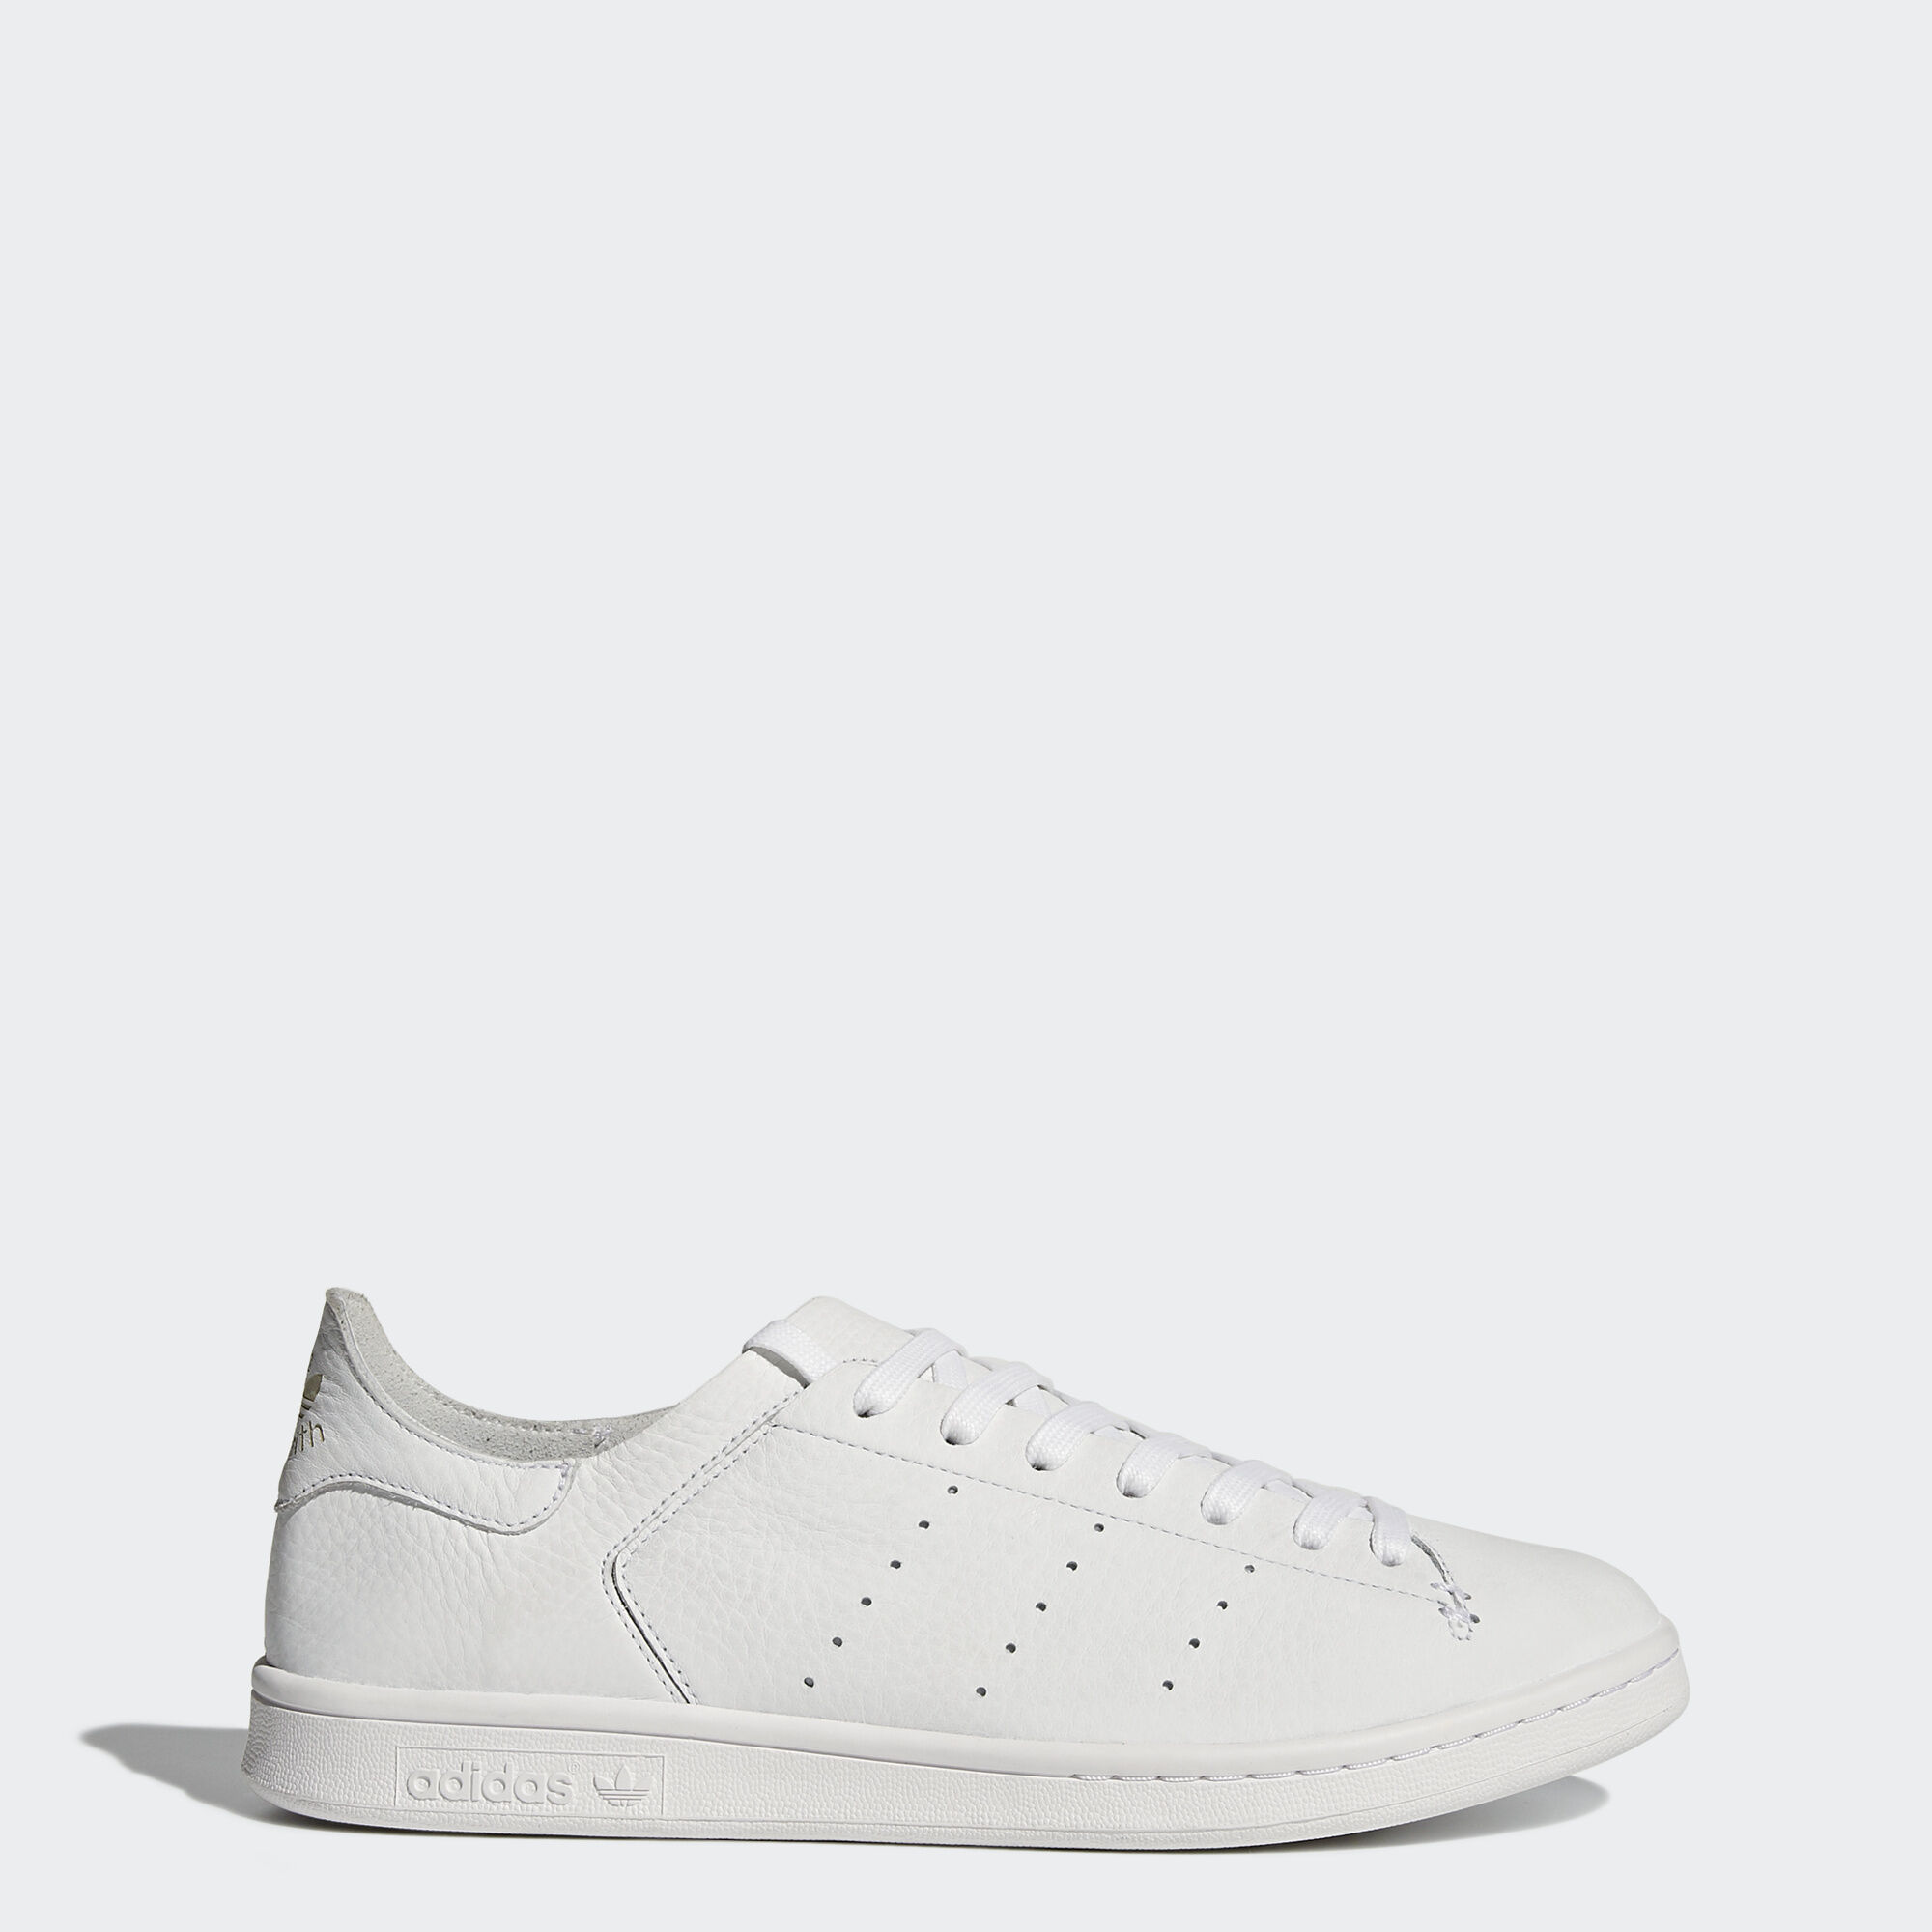 Stan Smith leather sneakers adidas UtWrSTh5GQ